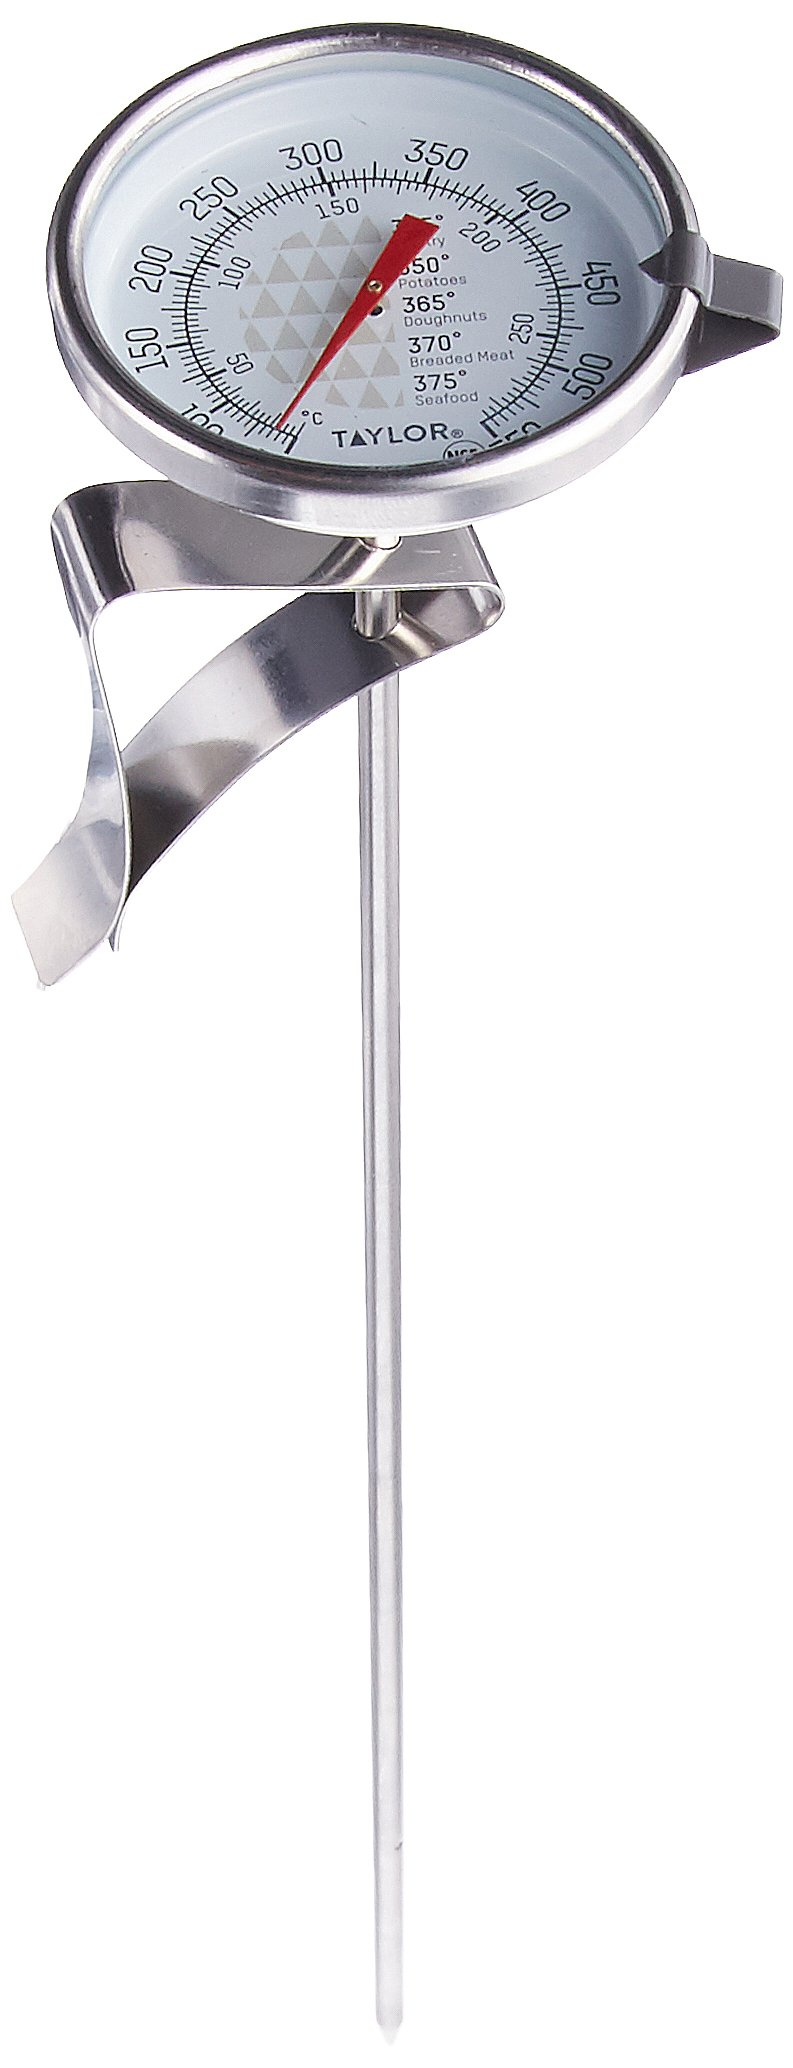 Taylor 3522 TruTemp Series Candy/Deep Fry Analog Dial Thermometer with 12'' Stem